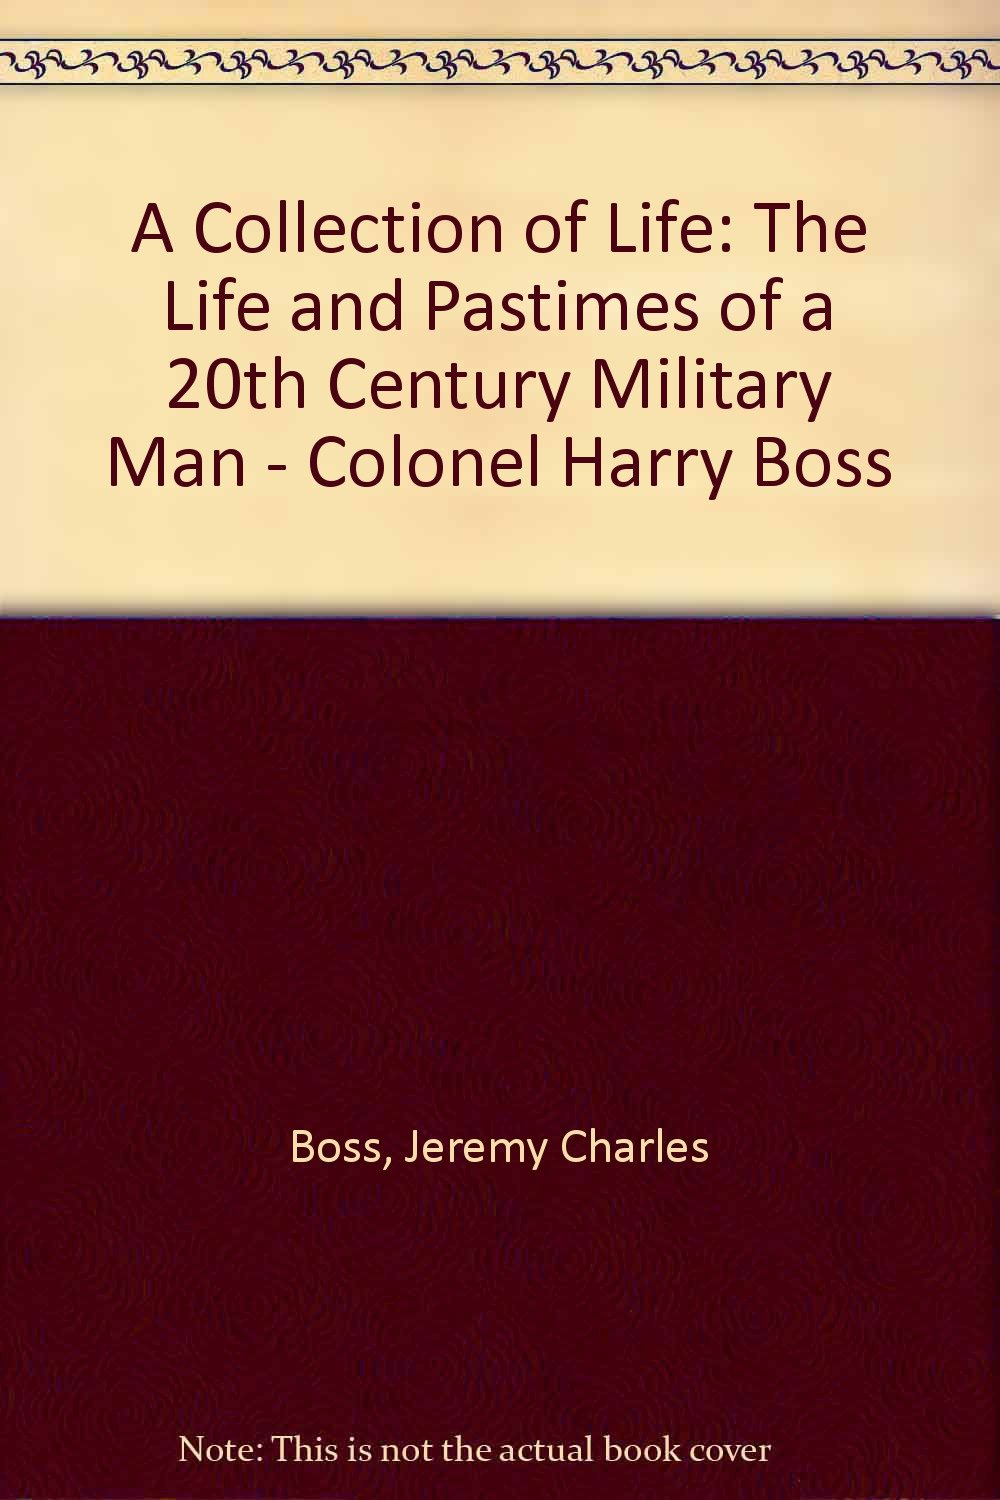 Read Online A COLLECTION OF LIFE The Life And Pastimes Of A 20th Century Military Man Colonel Harry Boss pdf